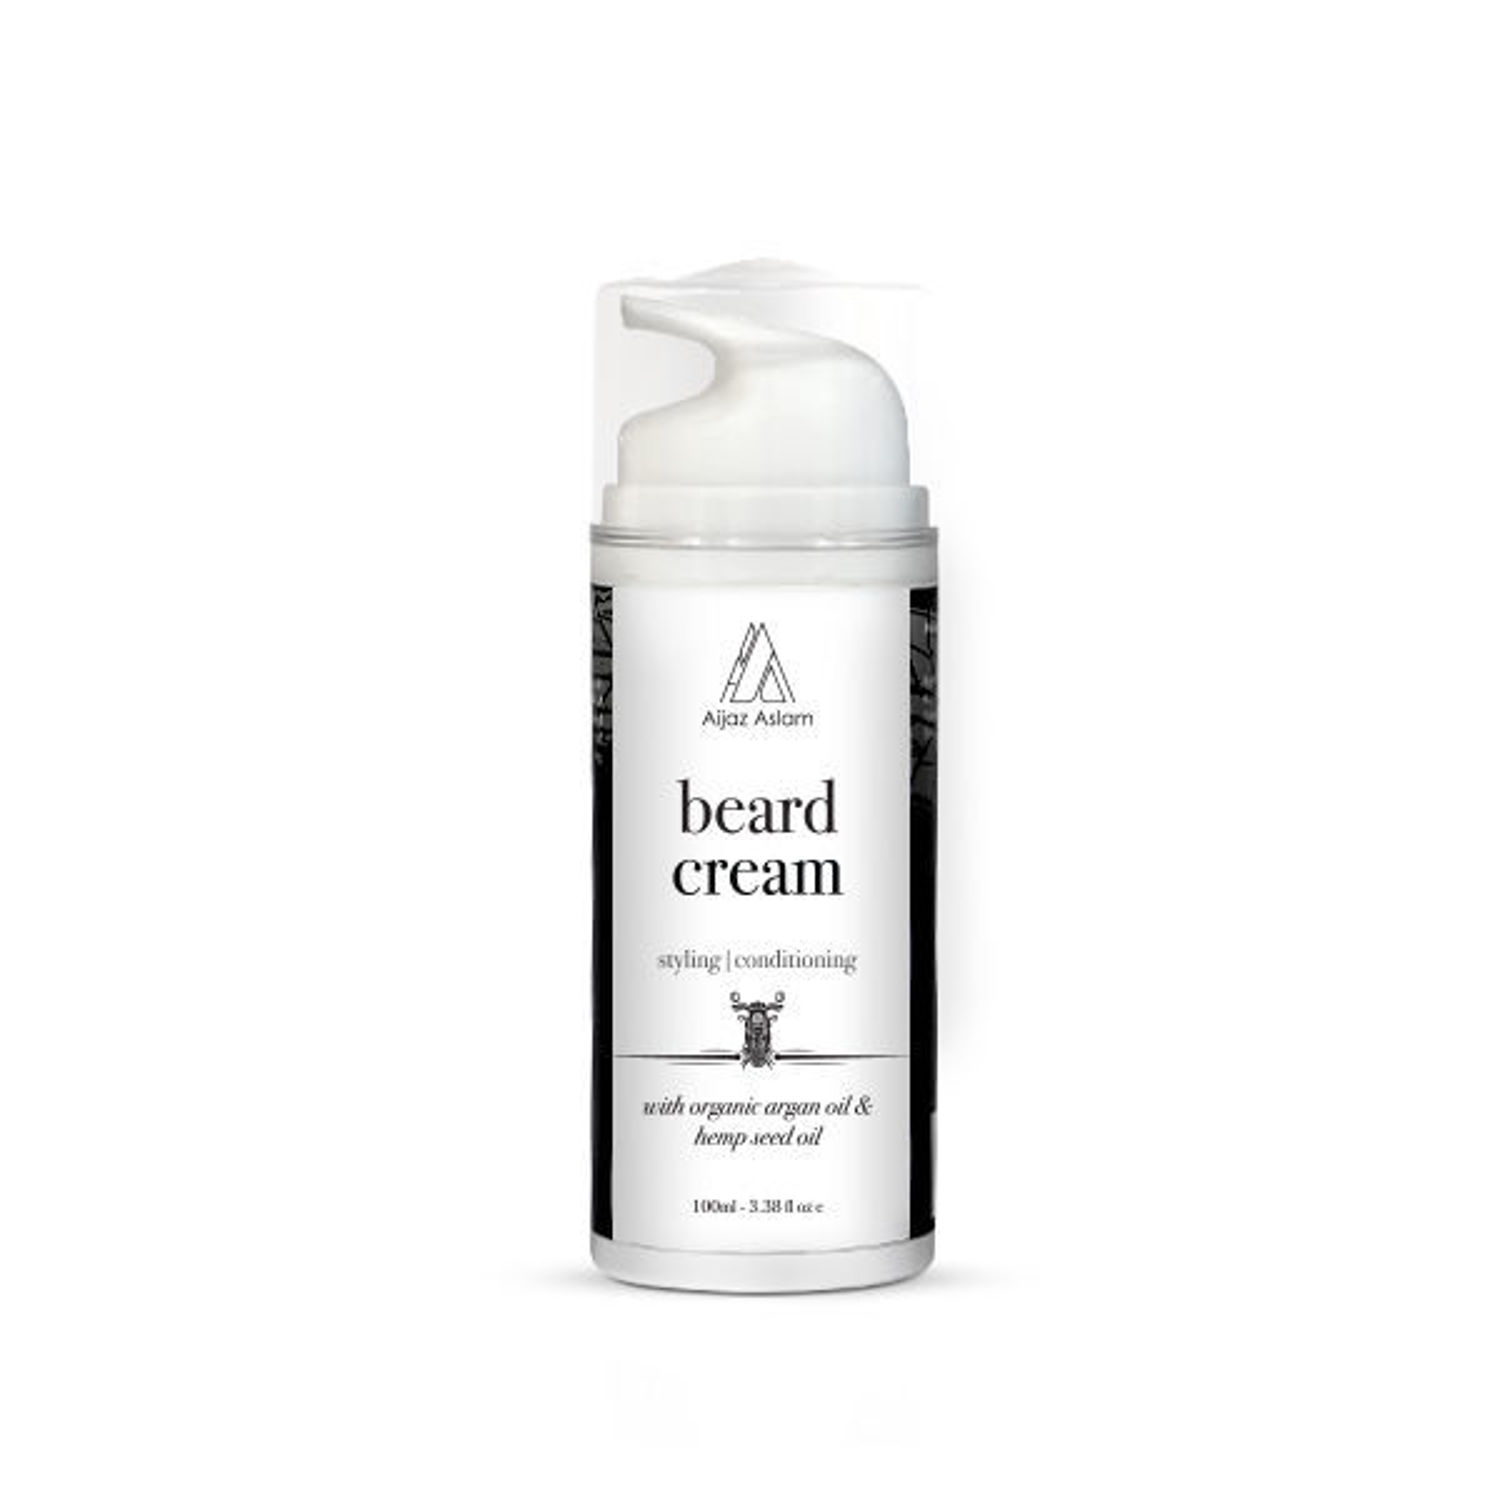 Picture of Beard Cream styling | conditioning (Aijaz Aslam)